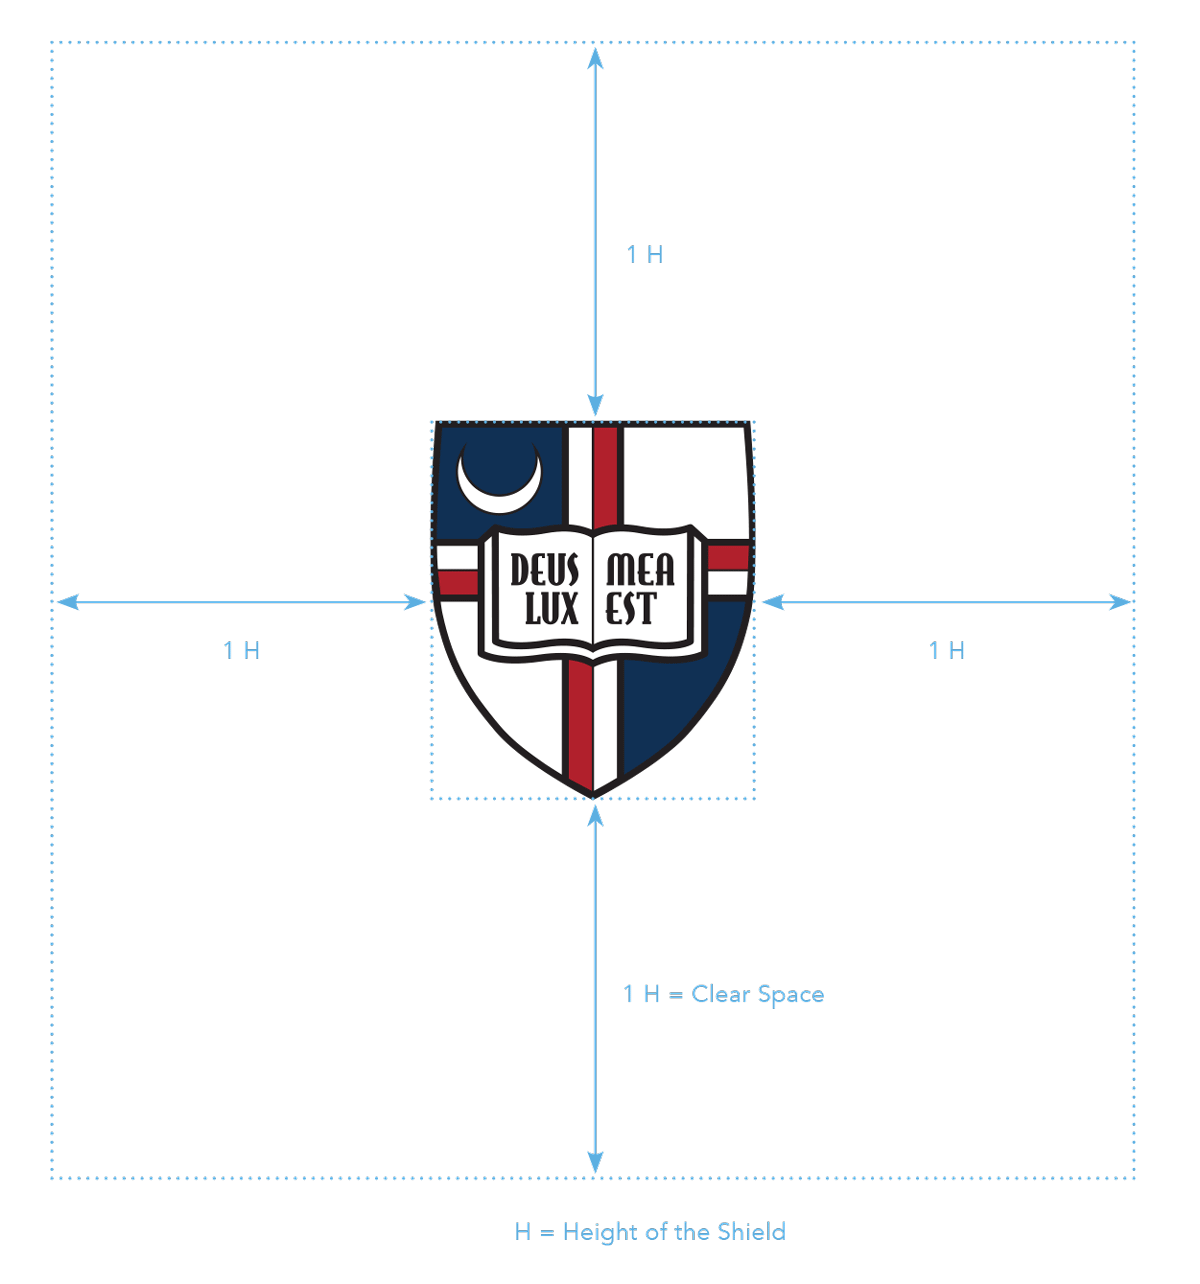 University Identity - shield clear space graphic